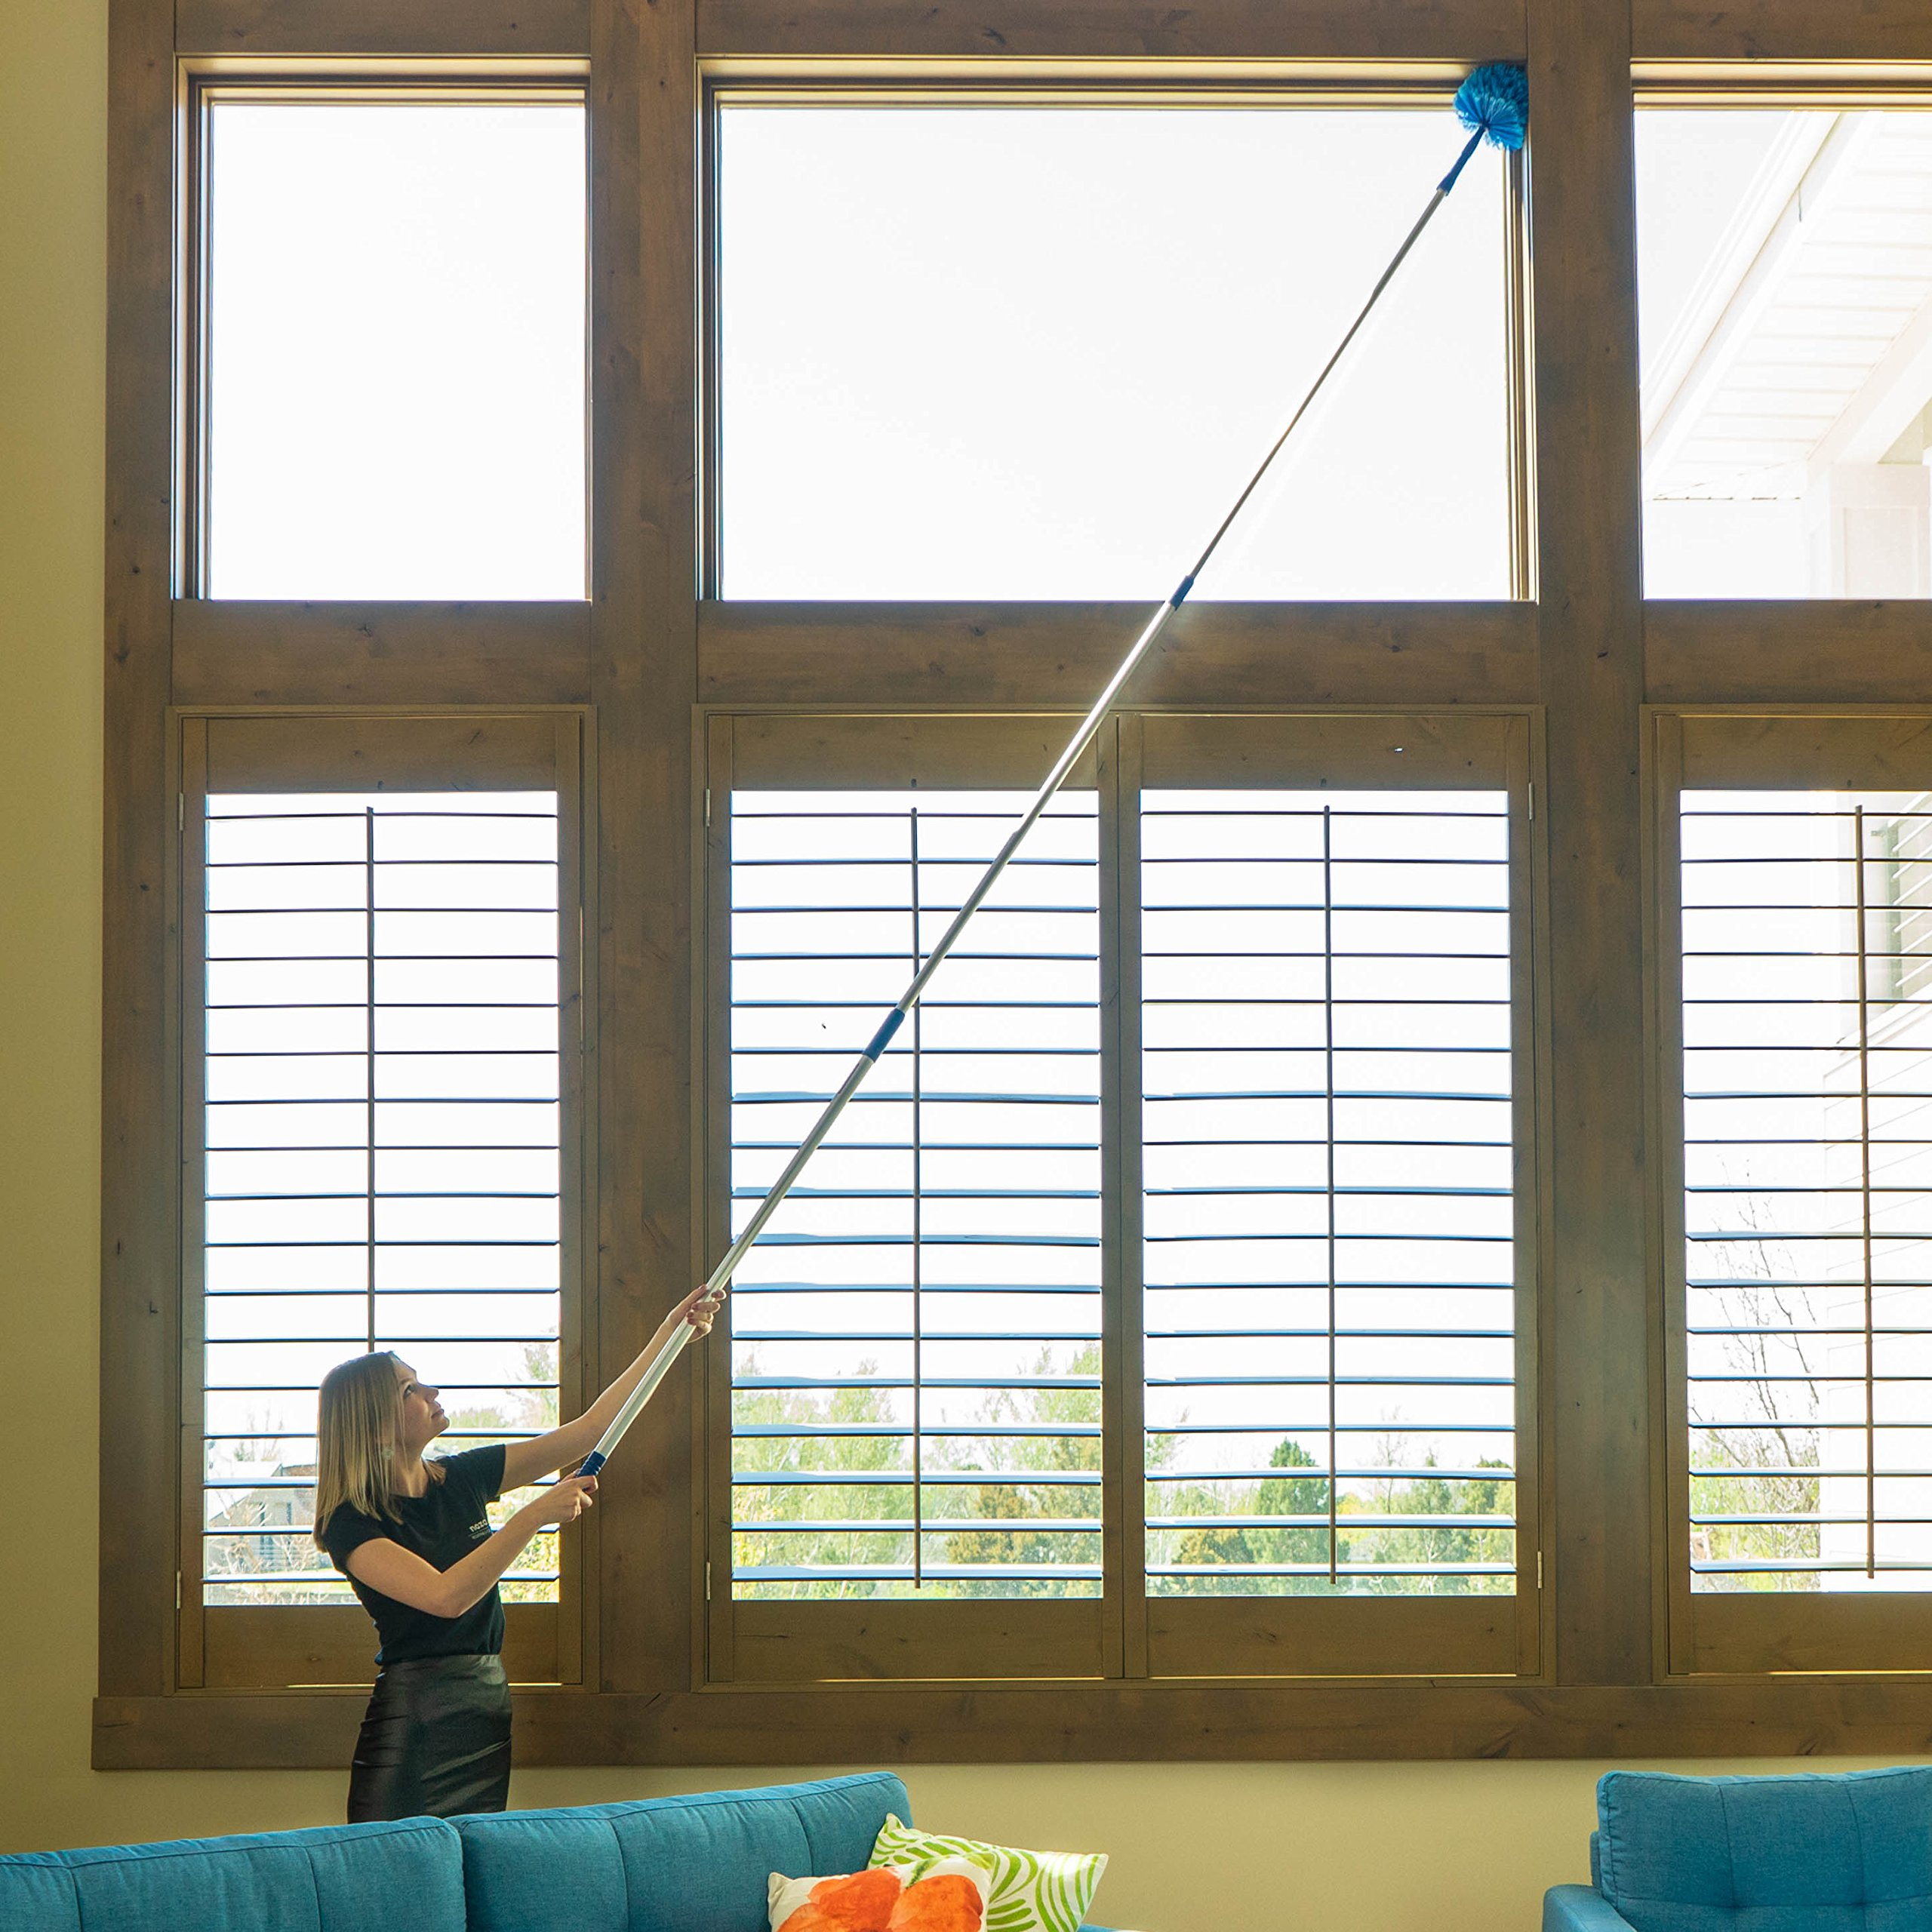 Ceiling Fan Duster Cobweb Duster, Extendable Reach 20 feet,   3-Stage Aluminum Telescoping Pole   Extends for High Ceiling Duster   Long Handle Plus 2 Duster Heads by U.S. Duster Company (Image #5)